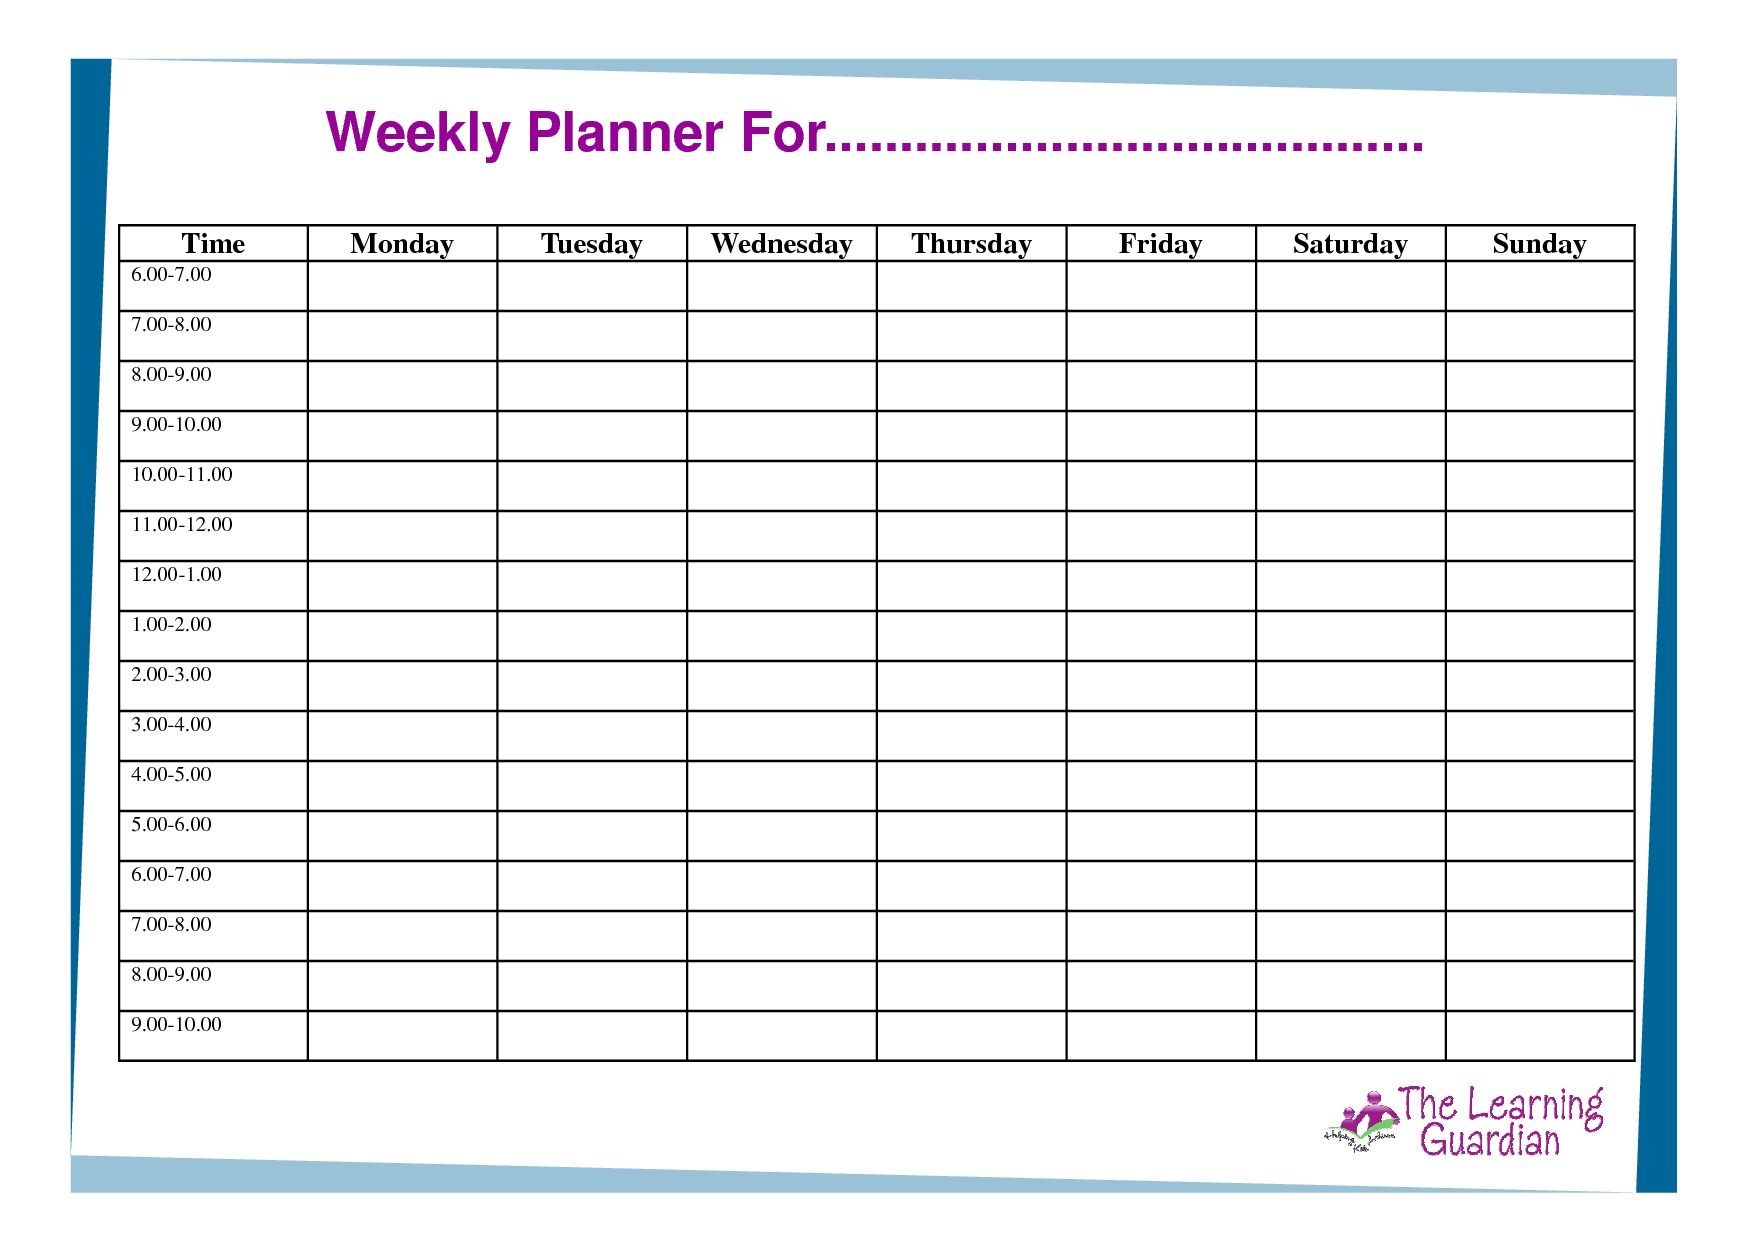 Free Printable Weekly Calendar Templates | Weekly Planner-Monday To Friday Blank Calendar